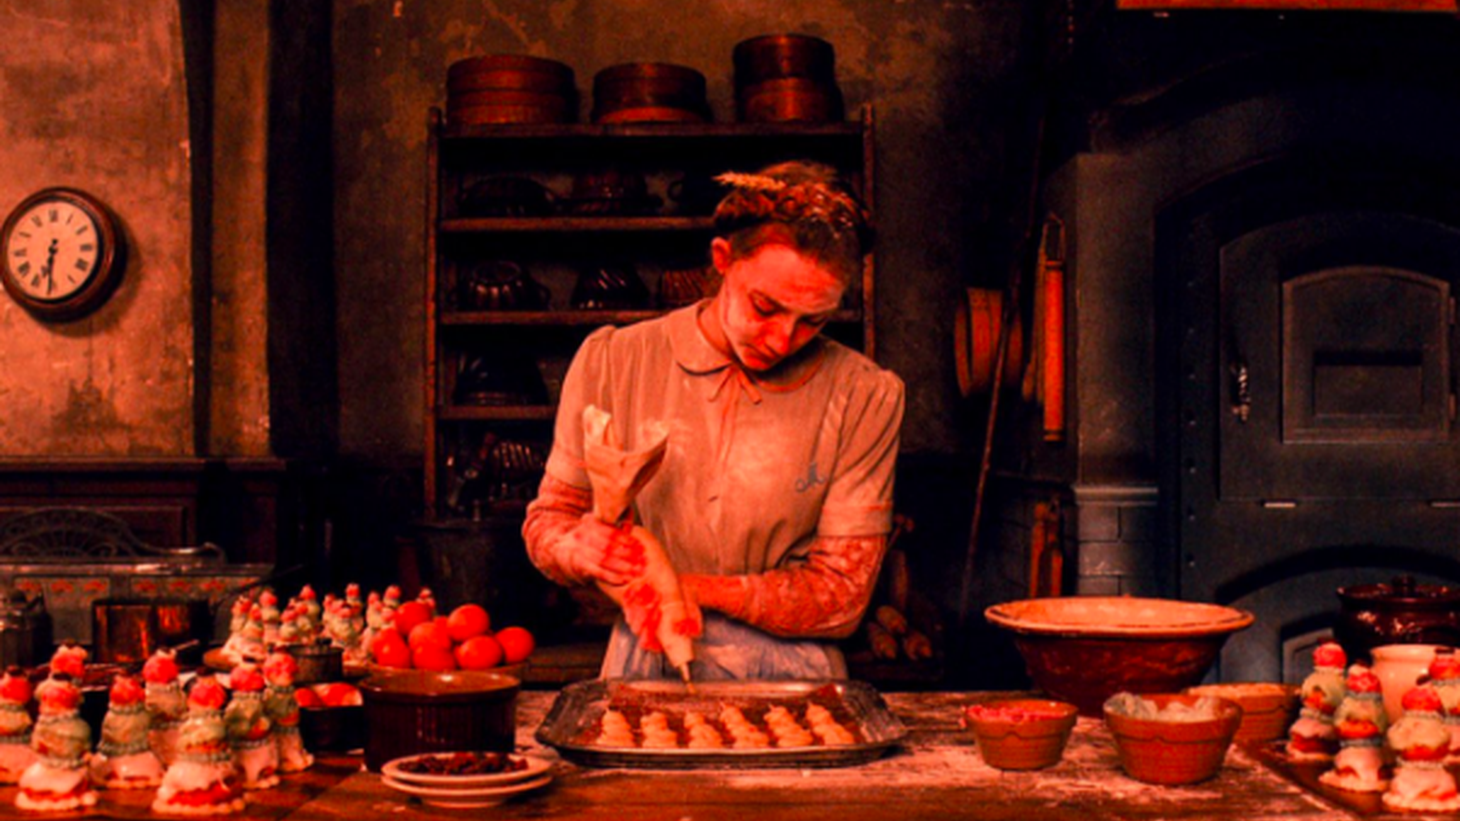 Saoirse Ronan stars as Agatha, a baker of intricate pastries in 